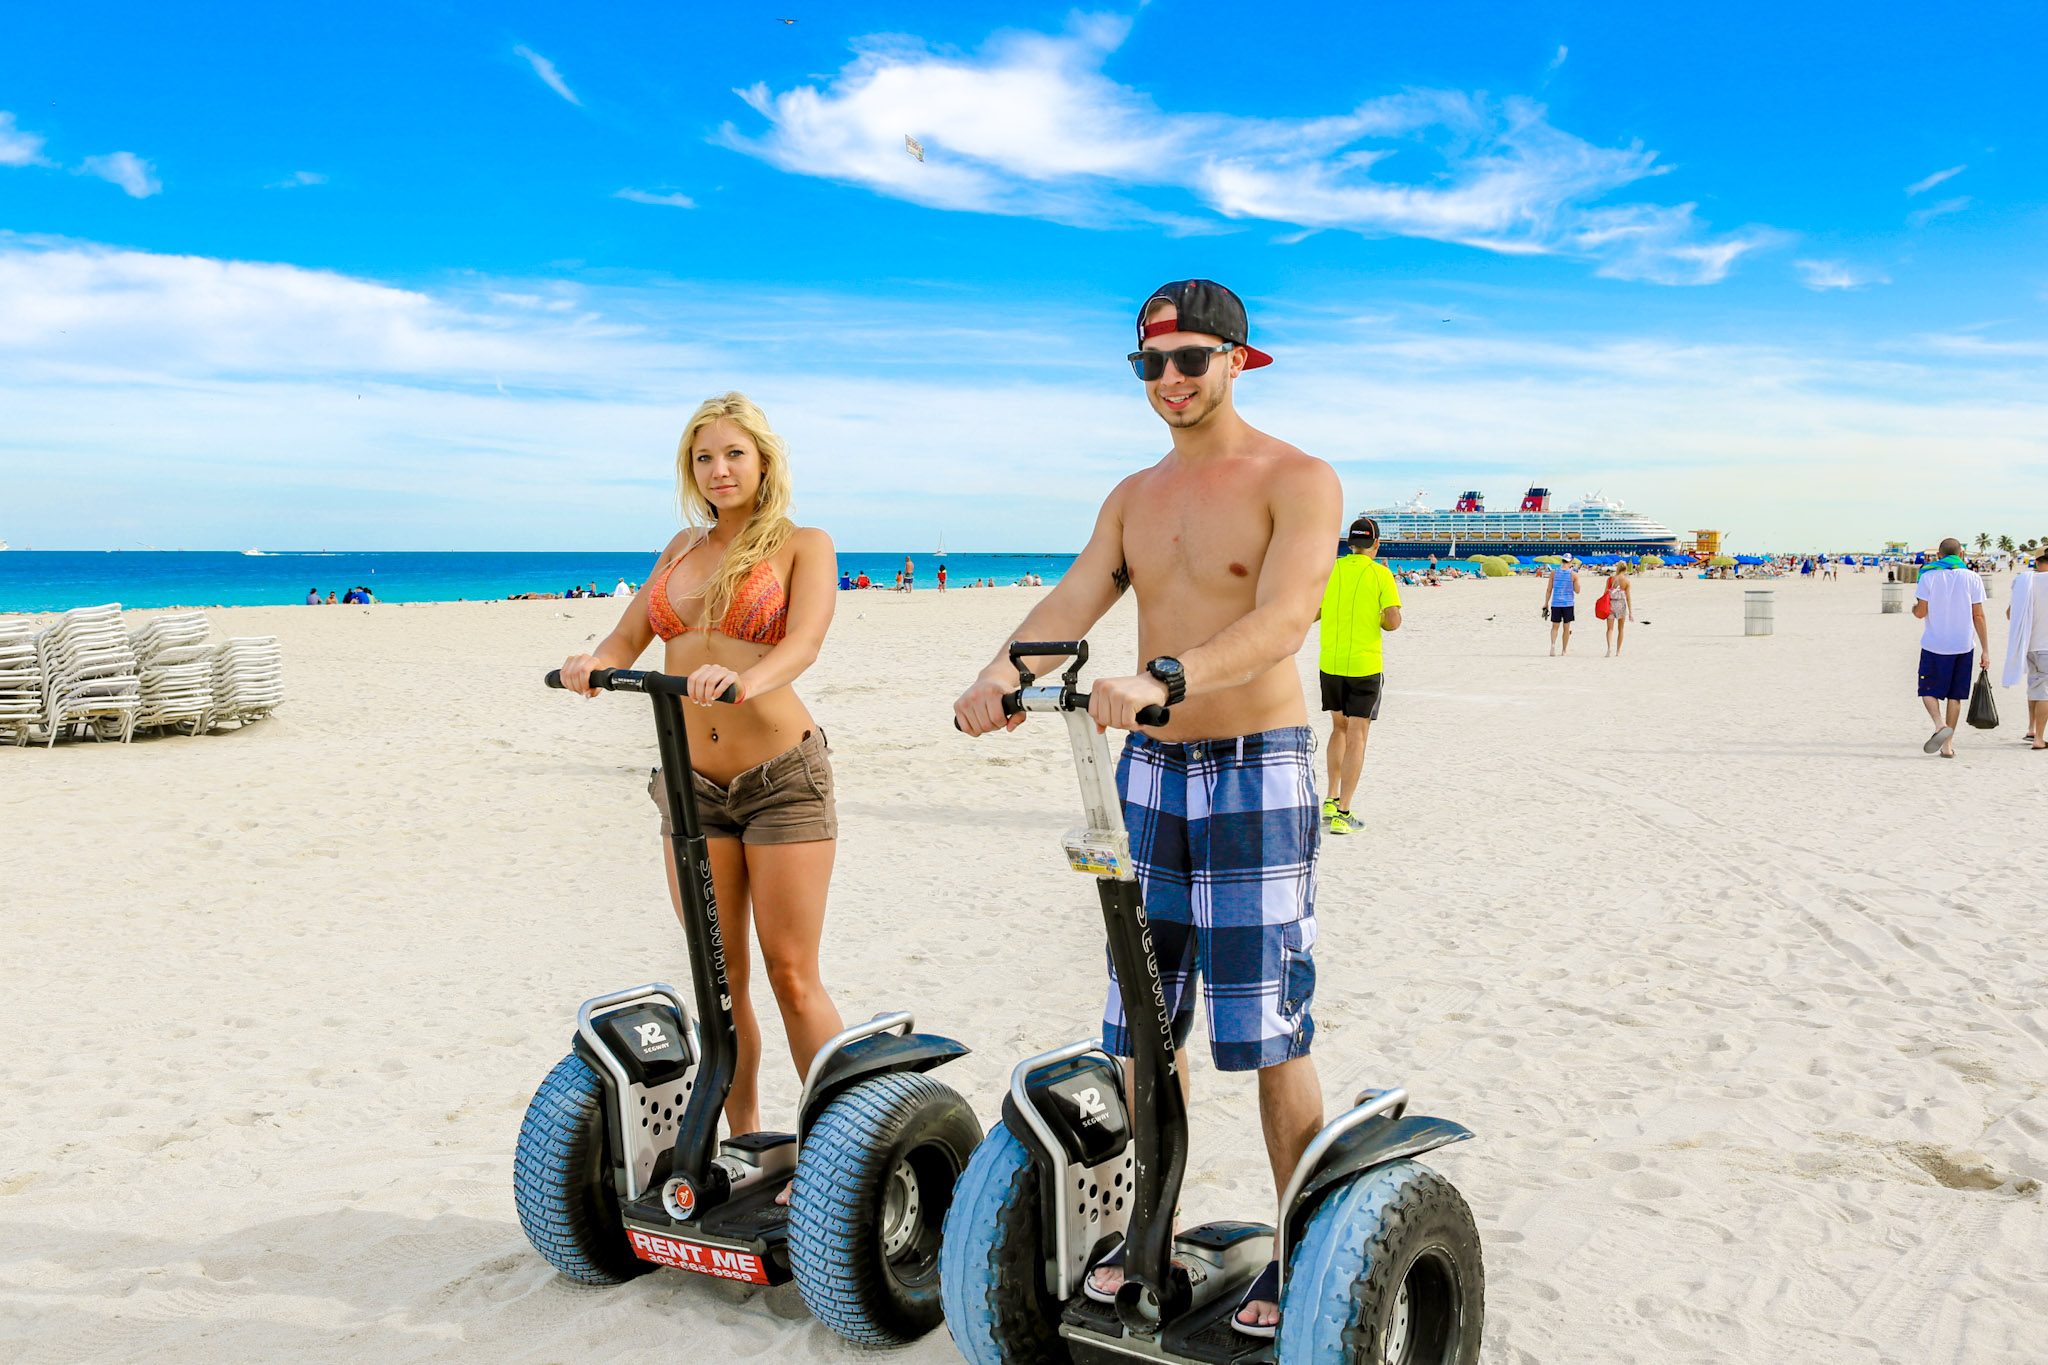 segway-tour-at-the-beach-in-miami-beach.jpg